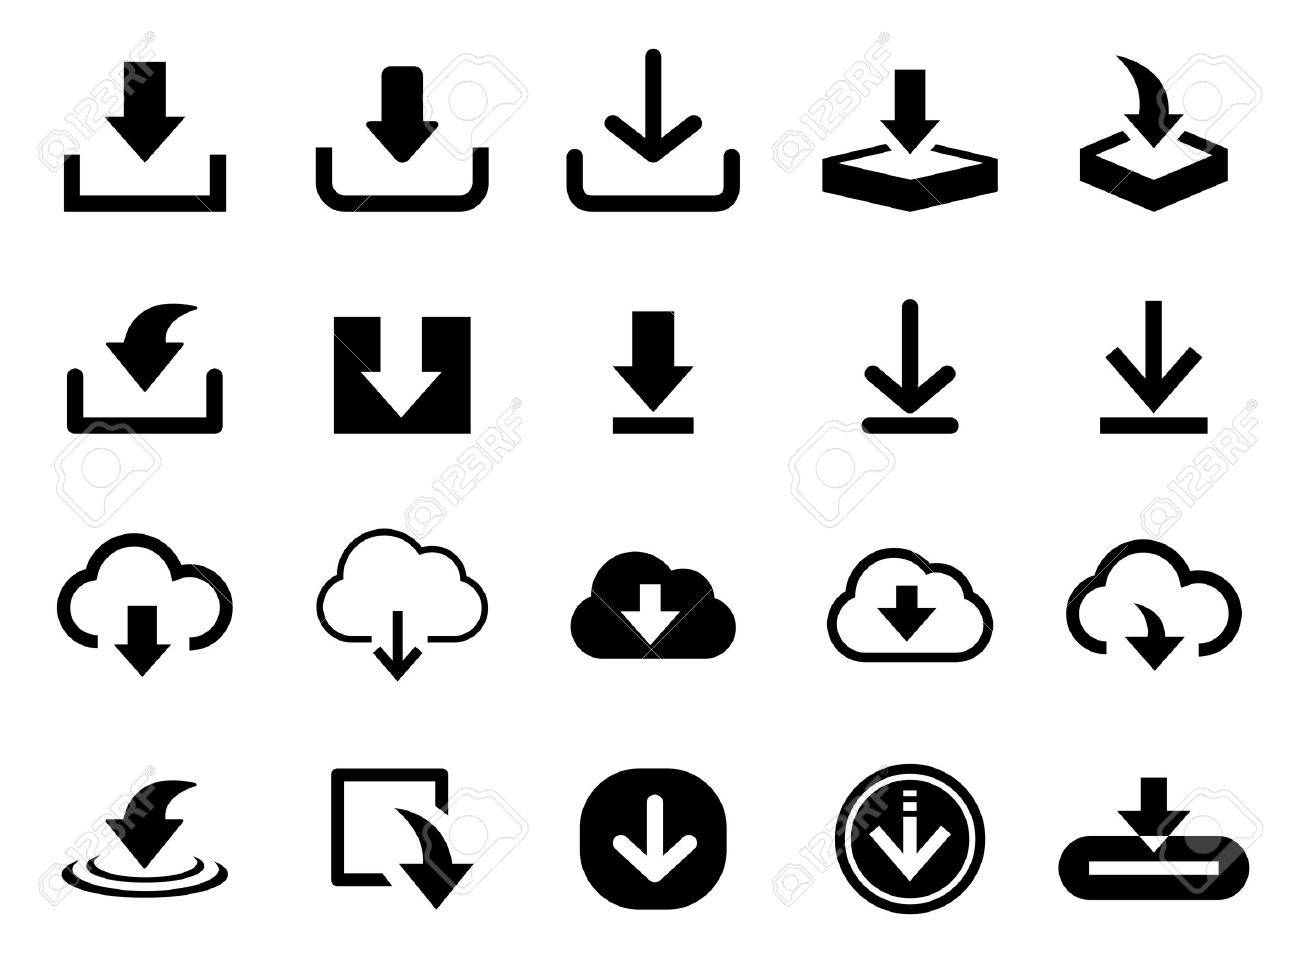 Download icon - 61752700